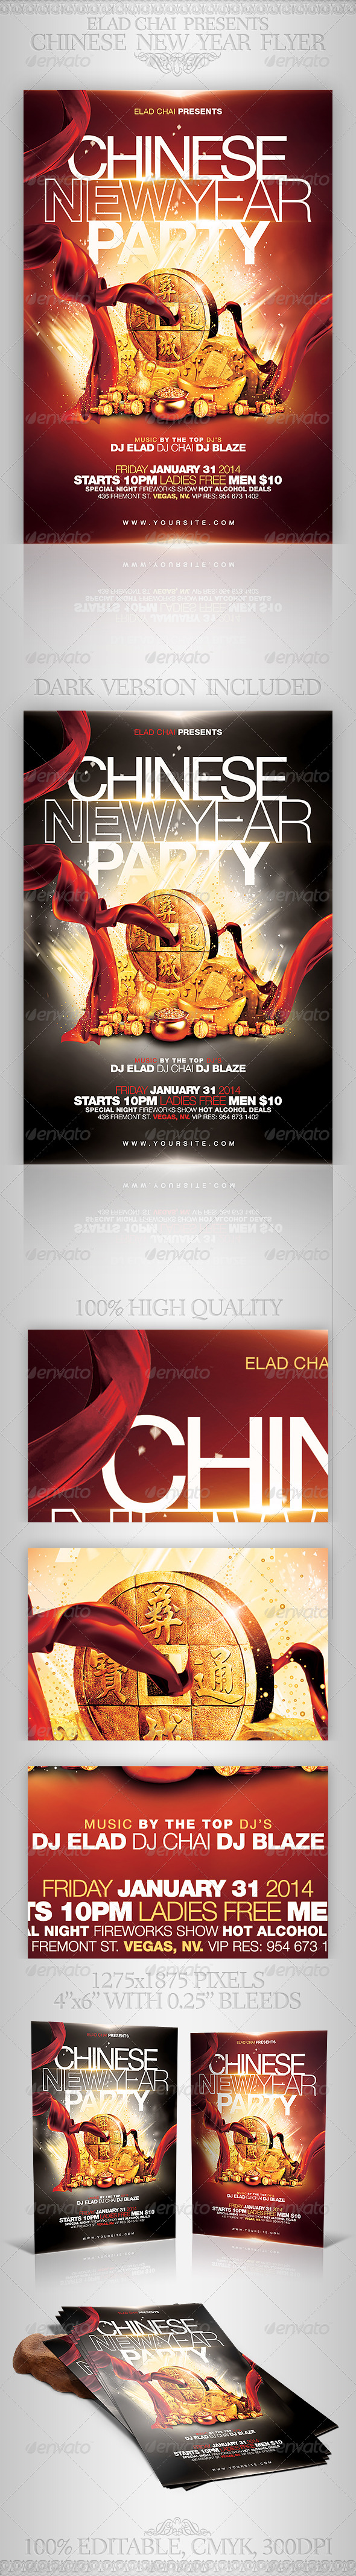 GraphicRiver Chinese New Year Party Flyer Template 6573801